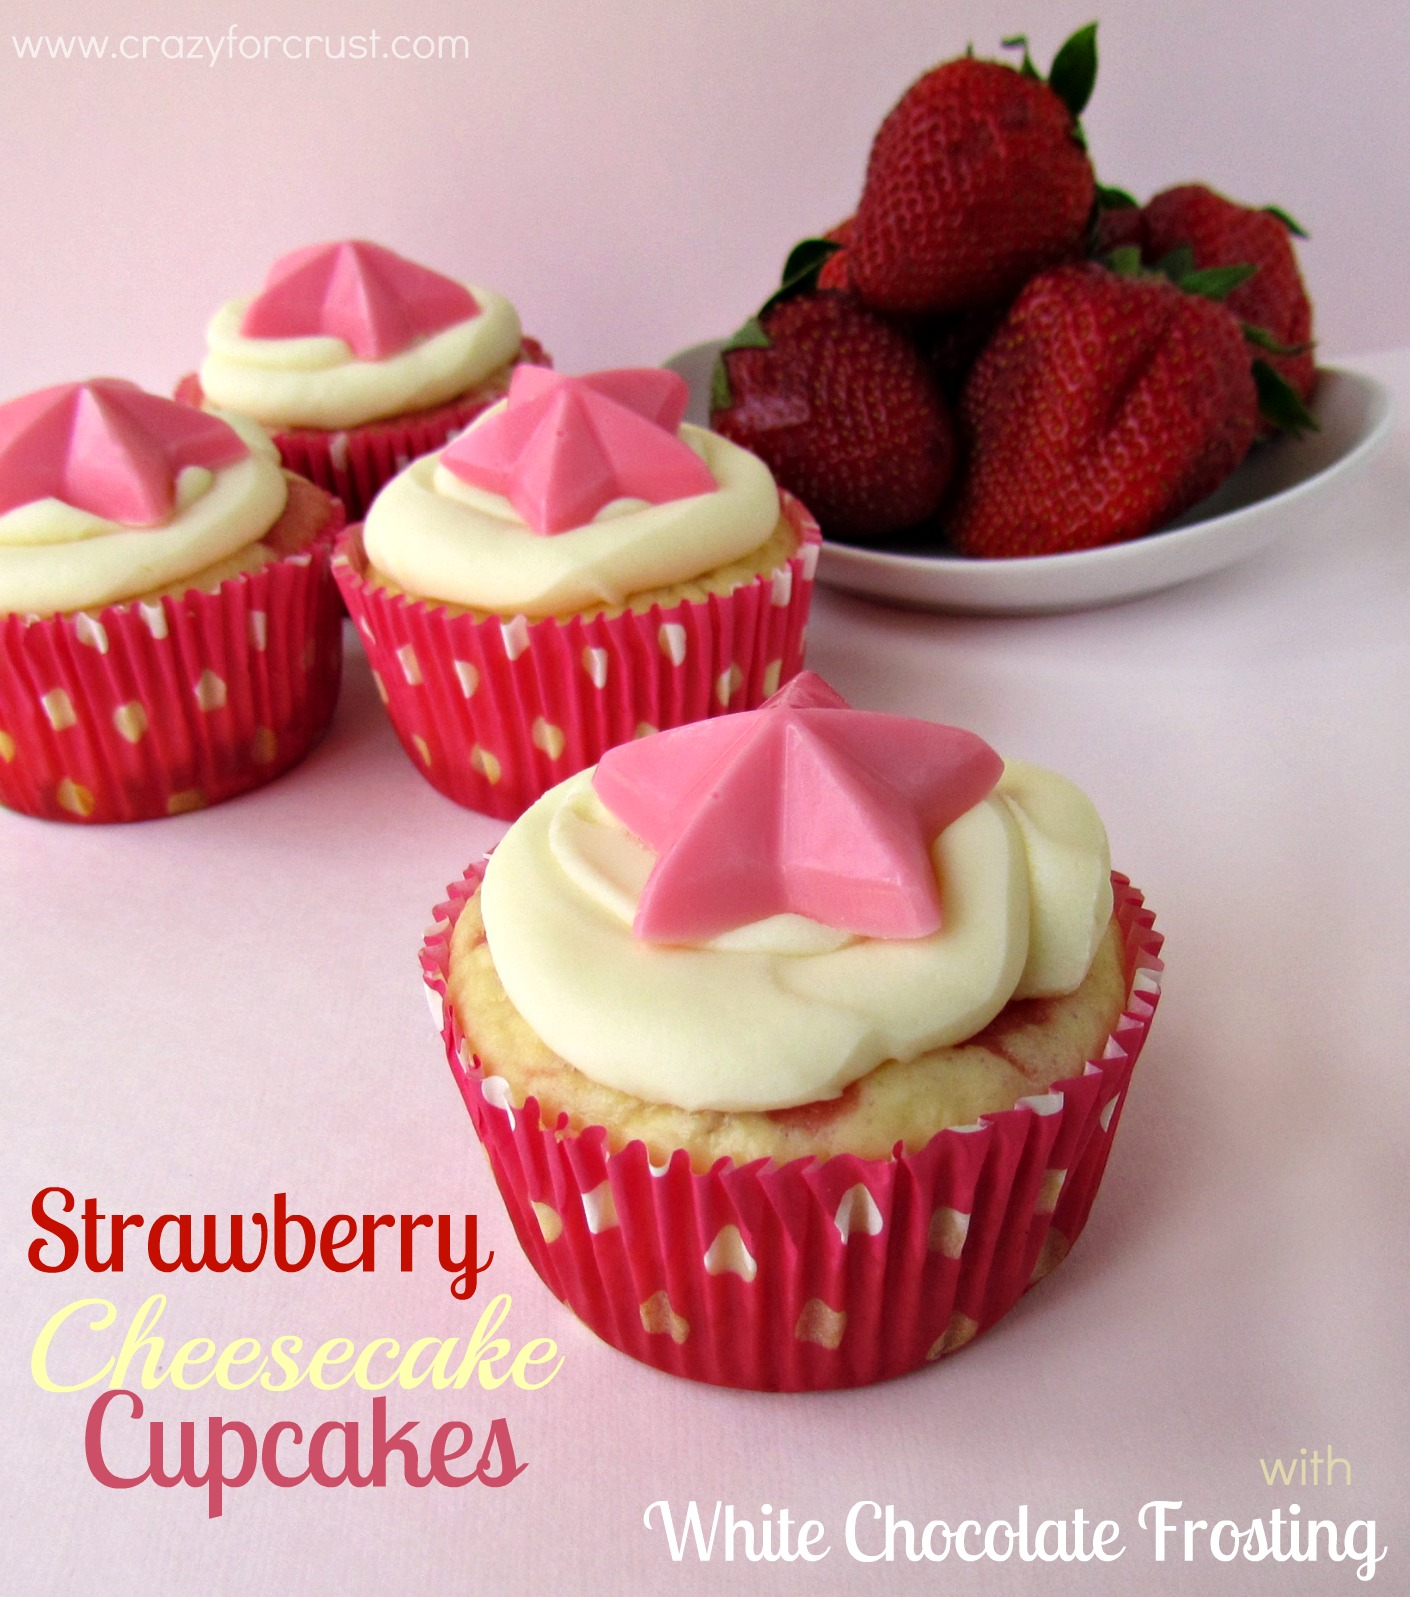 Strawberry Cheesecake Cupcakes with White Chocolate Frosting ...